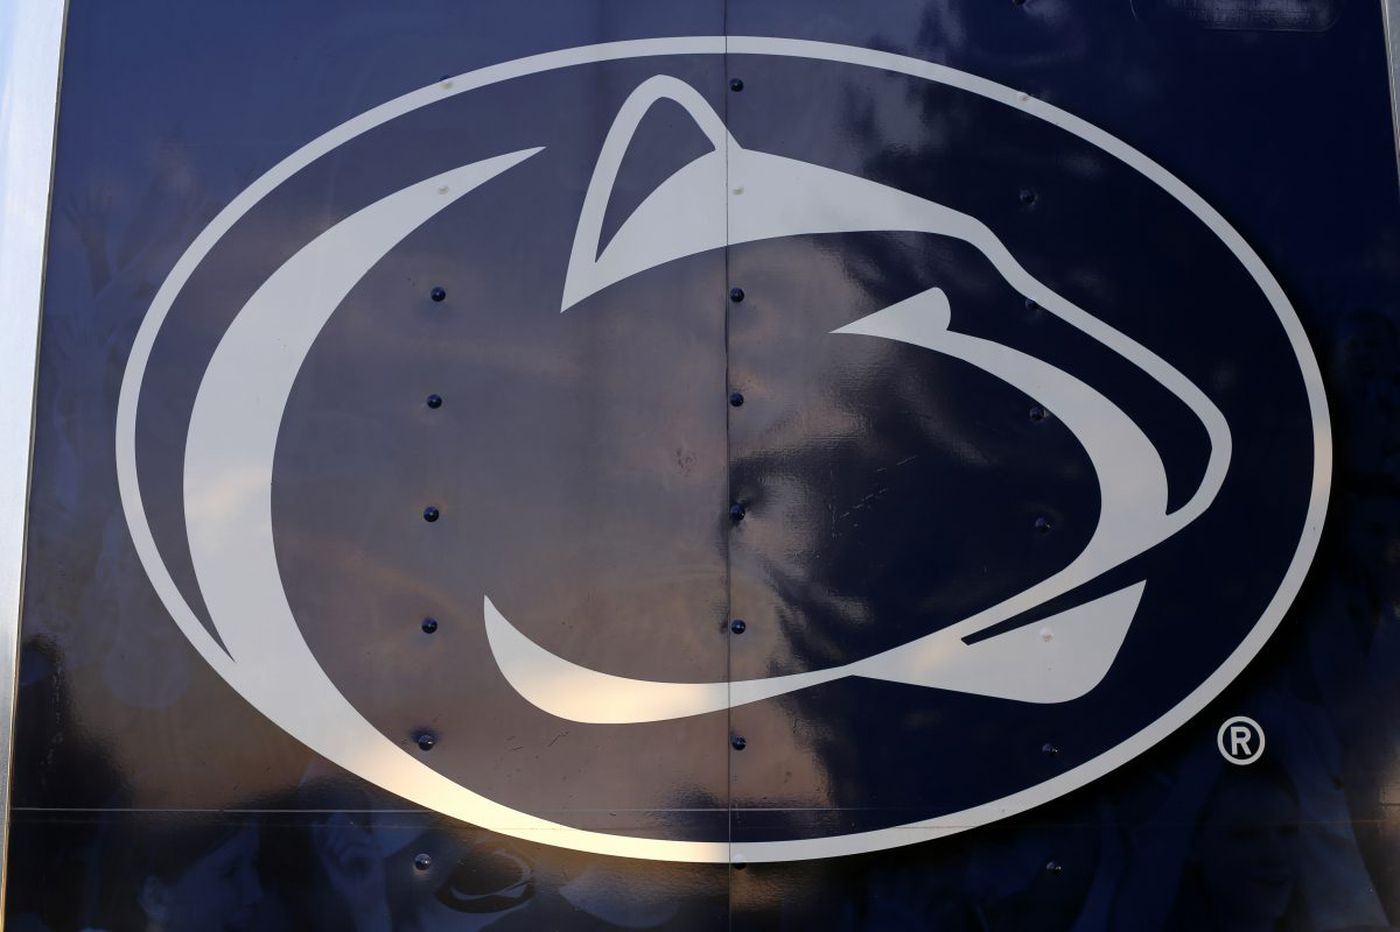 Jim Tarman, former Penn State athletic director, dies at 89